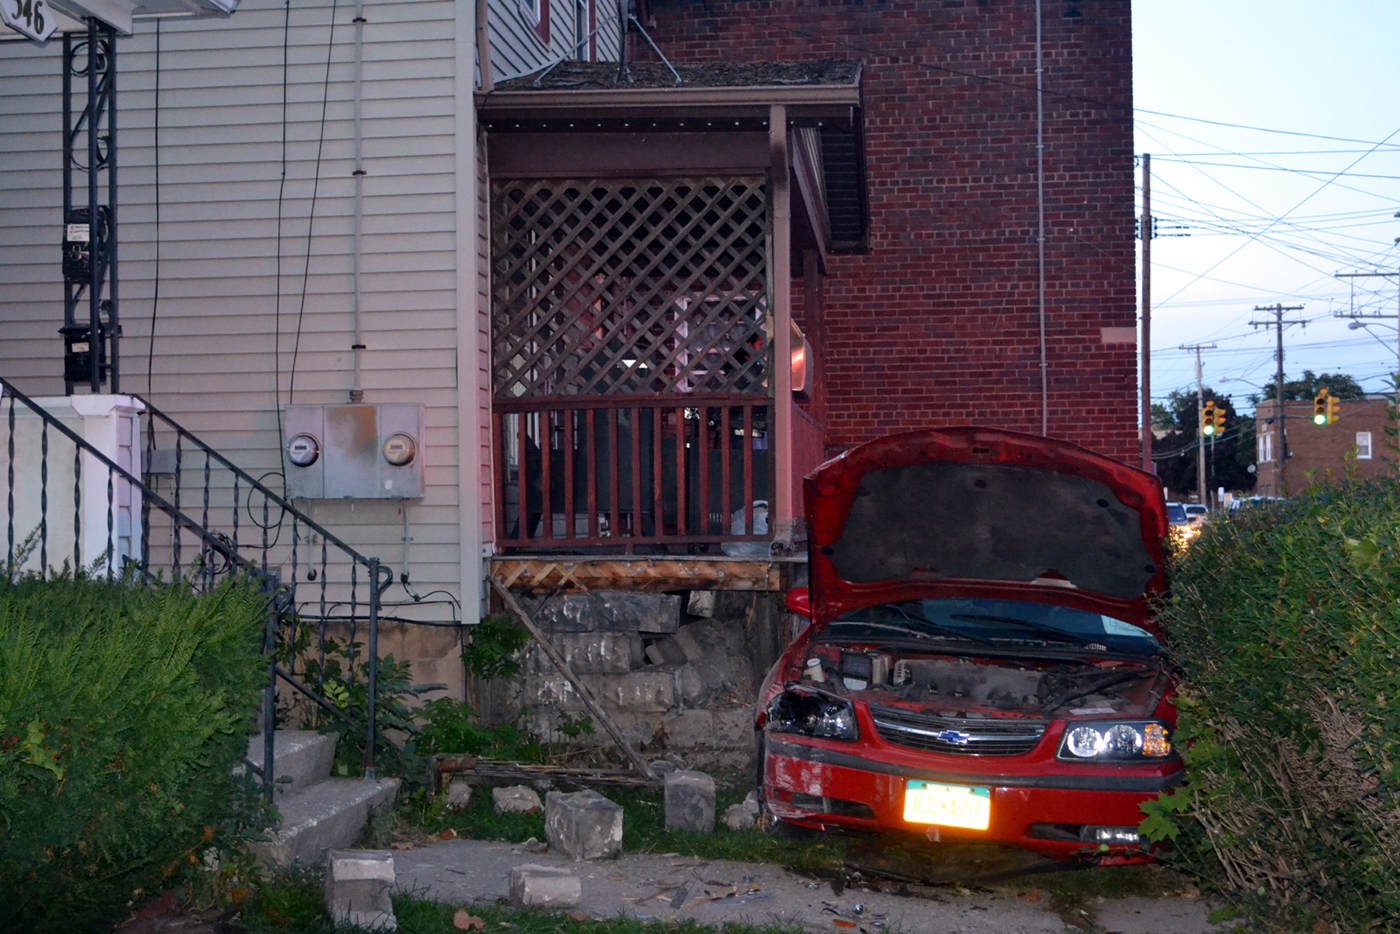 The car that crashed into a home on 19th Street in Niagara Falls. (Larry Kensinger/Contributor)